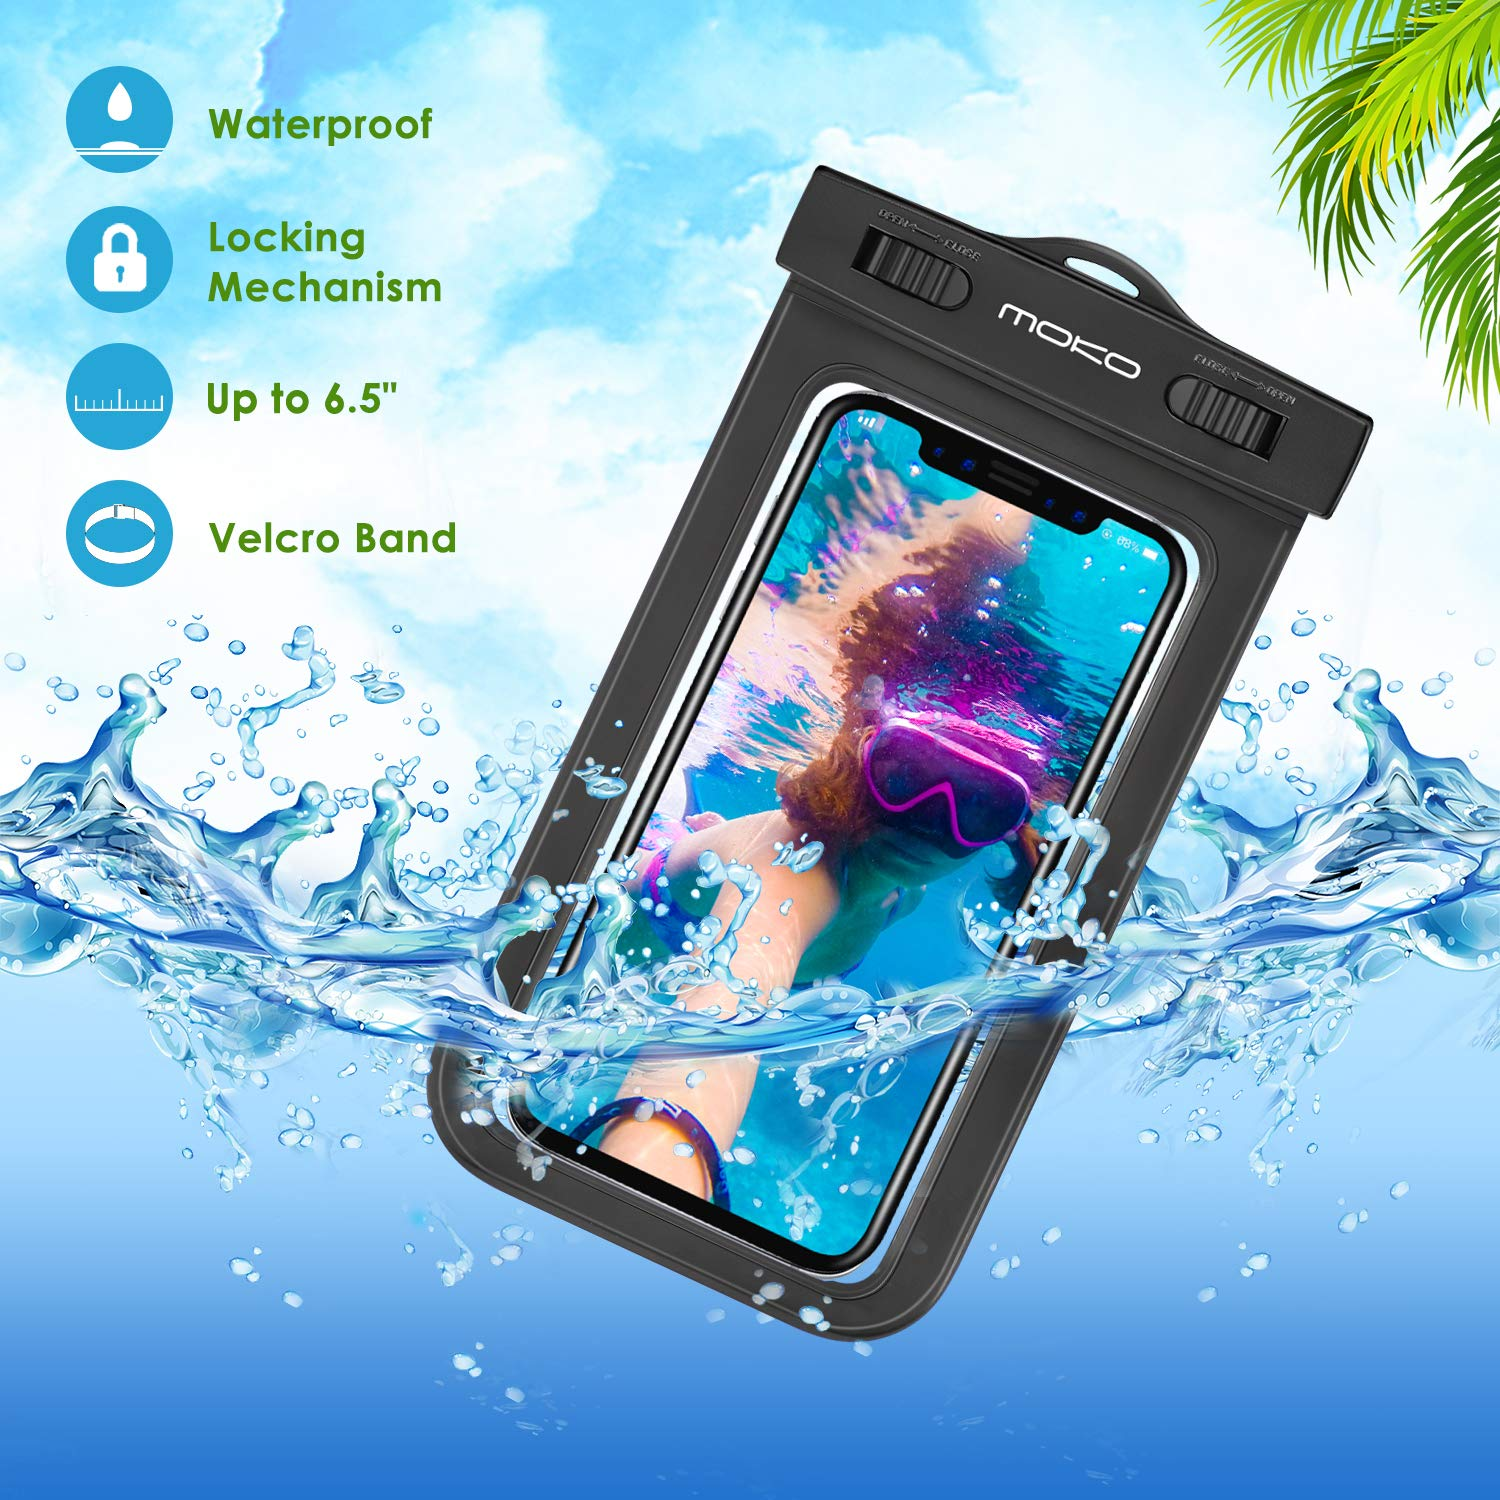 Self-Conscious Yosh Waterproof Phone Case Black New Great For Travelling Walking Hiking Outdoor Cases, Covers & Skins Cell Phones & Accessories